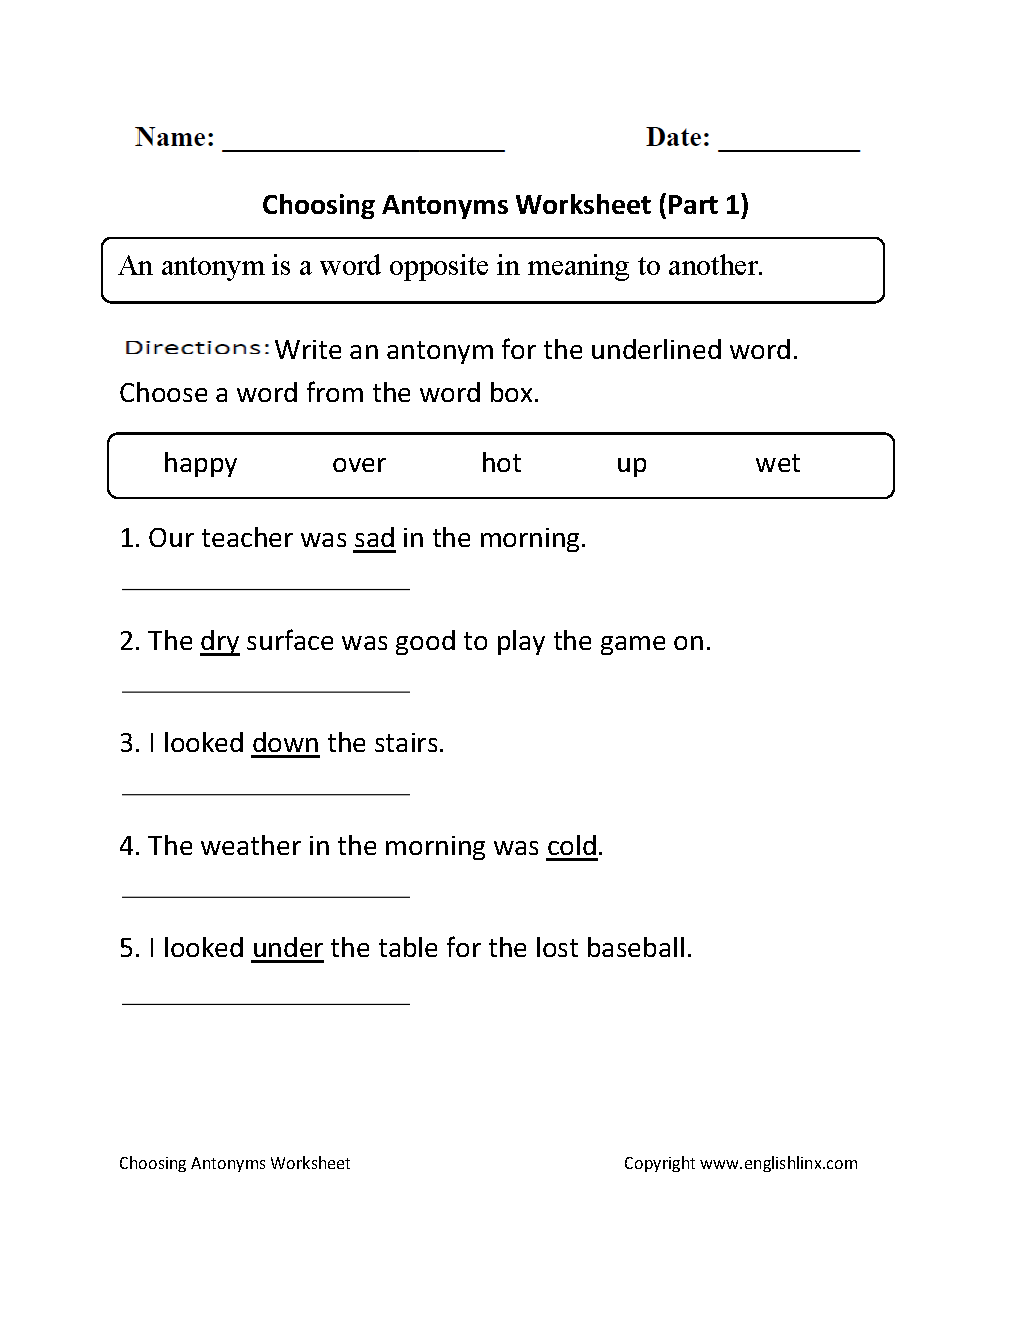 worksheet Opposite Worksheets antonyms worksheets choosing worksheet part 1 1